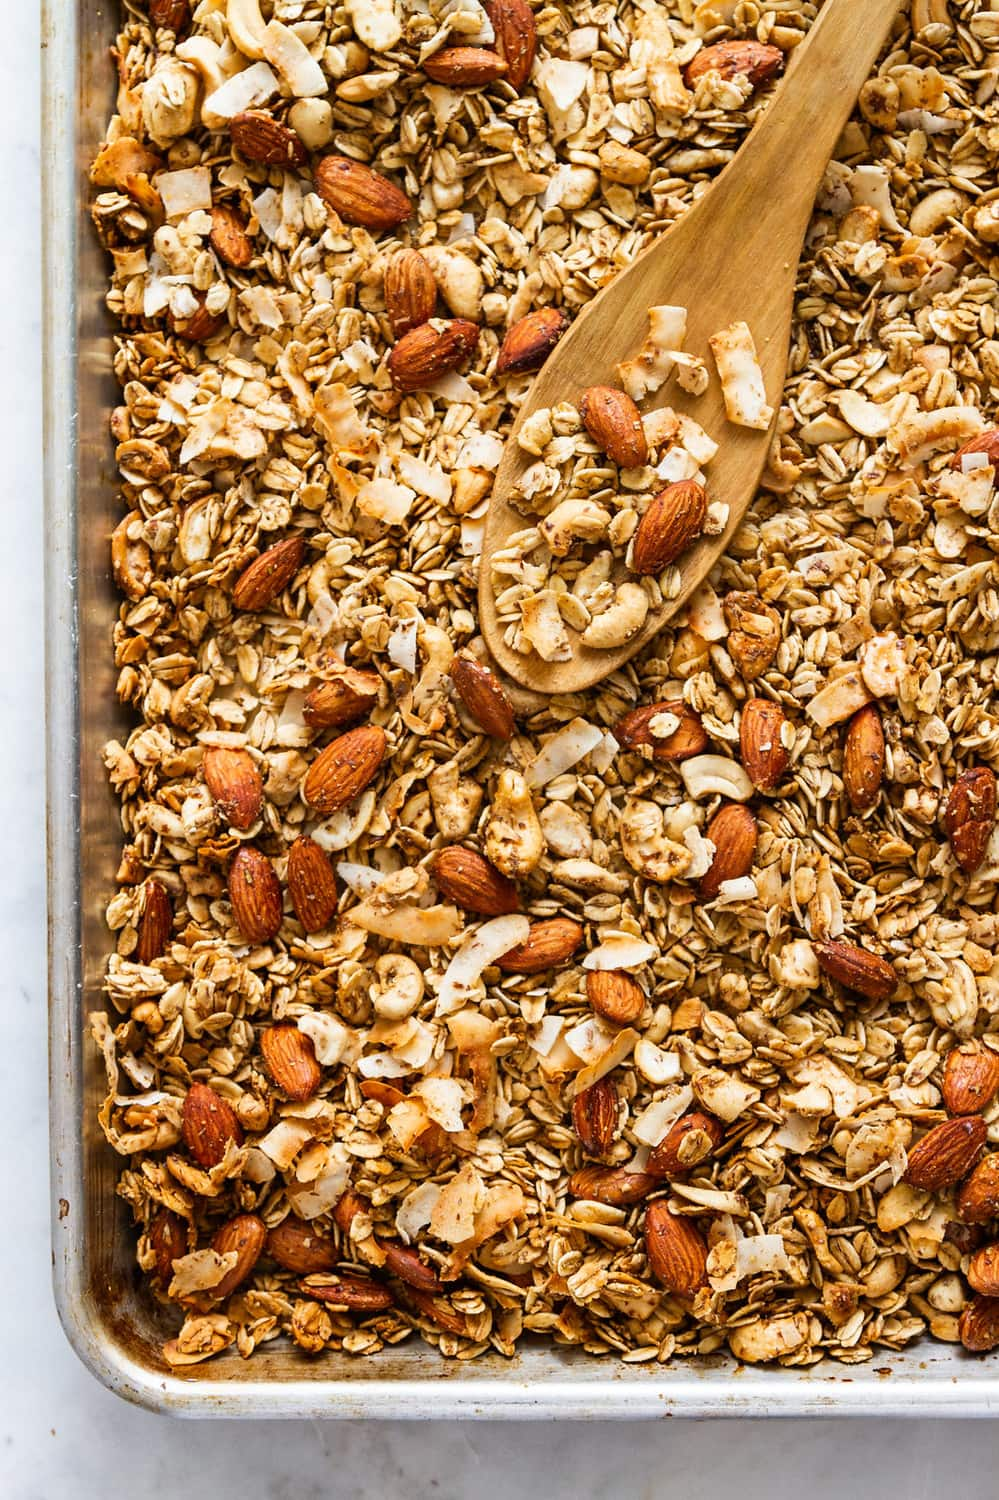 healthy granola just finished baking in the oven